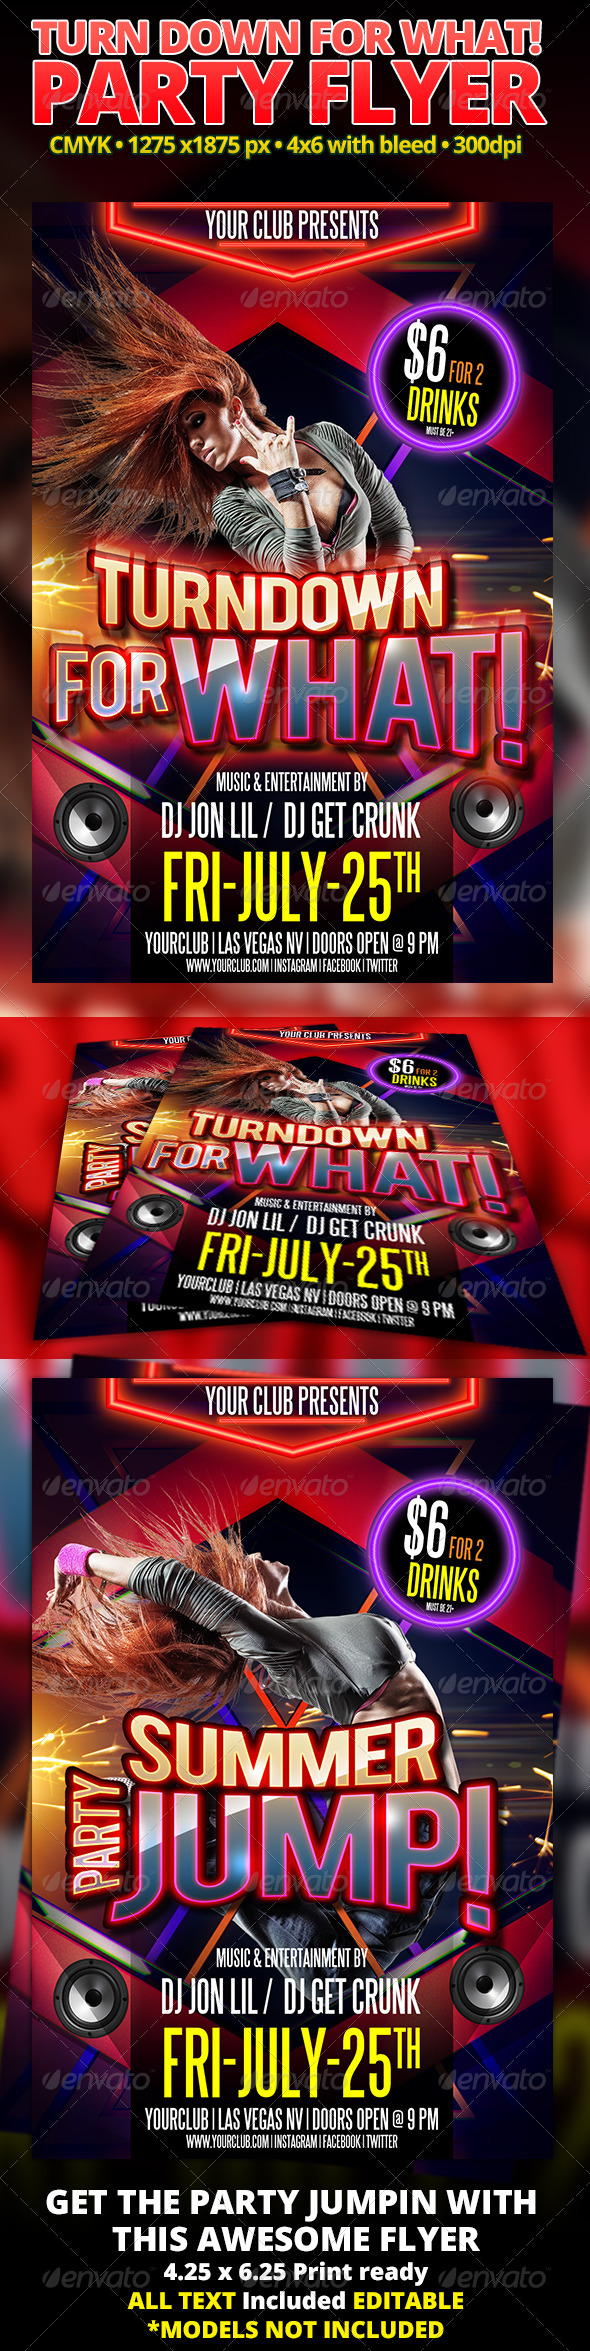 GraphicRiver Turn Down For What Party Flyer 7844258